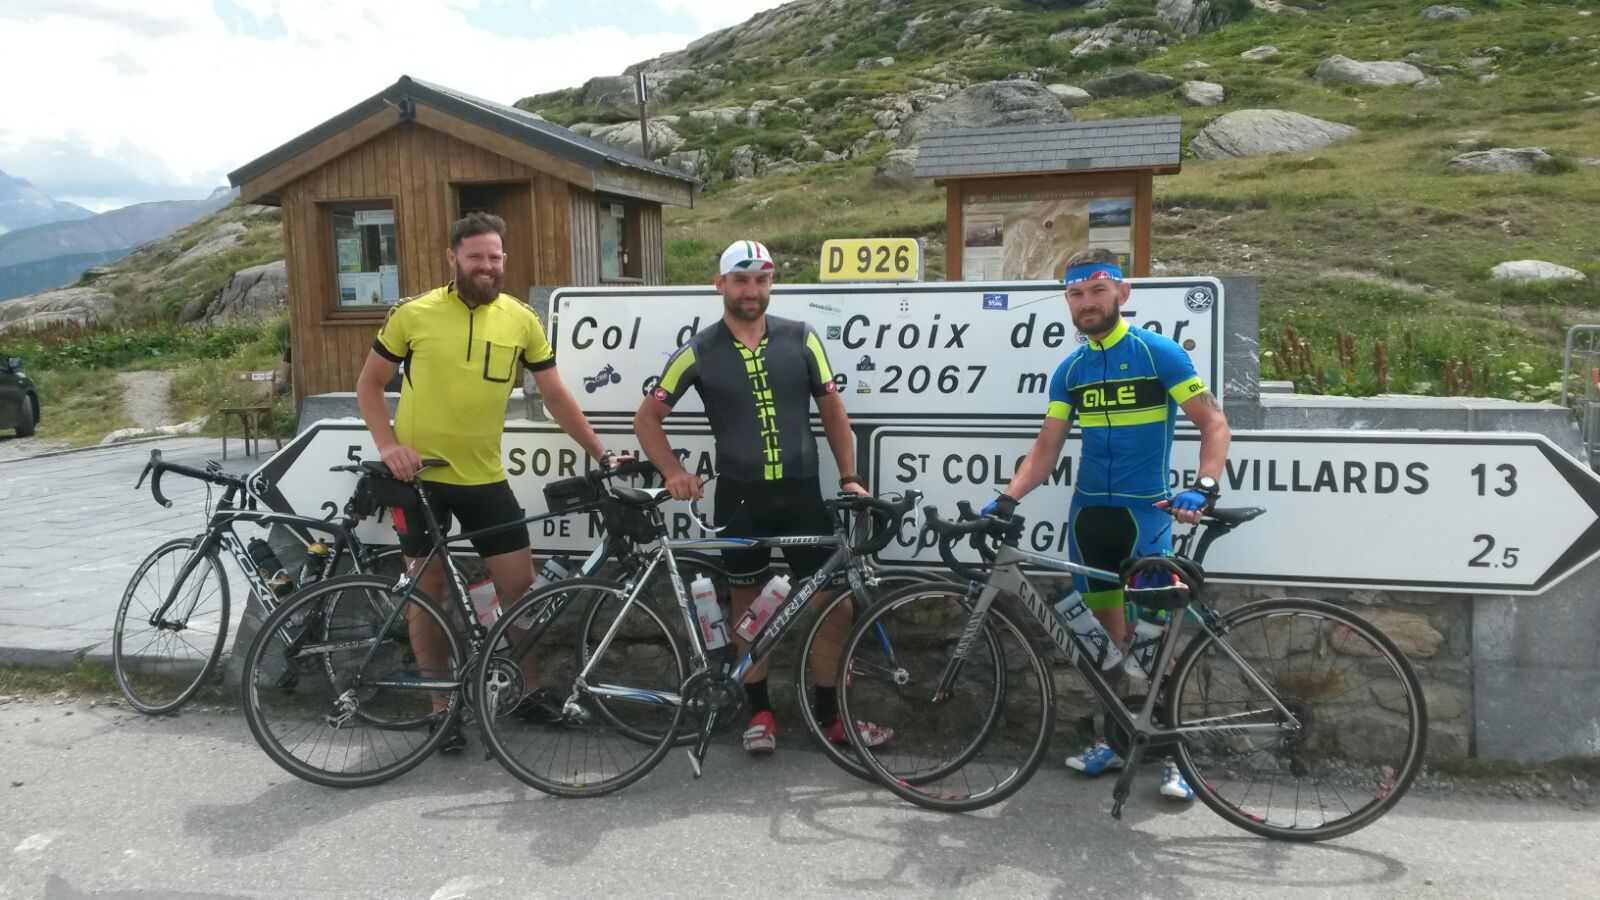 Fundraiser completes 900 mile cycle in 4 days!